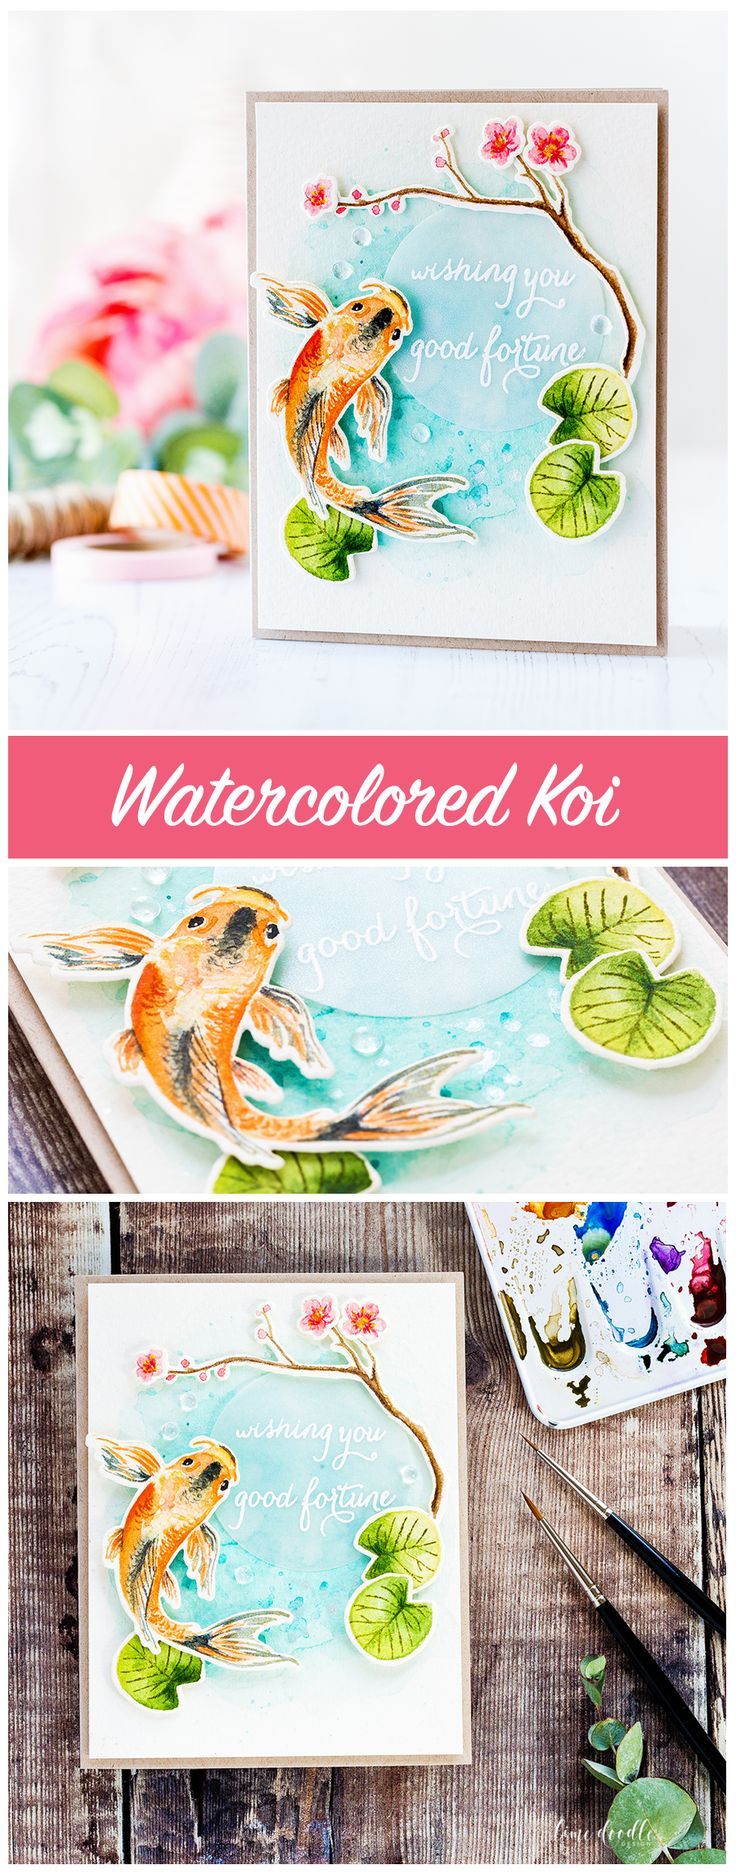 Watercolored koi and spring blossoms from Hero Arts by Debby Hughes. Find out more about this card by clicking on the following link: http://limedoodledesign.com/2017/02/hero-arts-2017-catalog-reveal-blog-hop-card-drive/